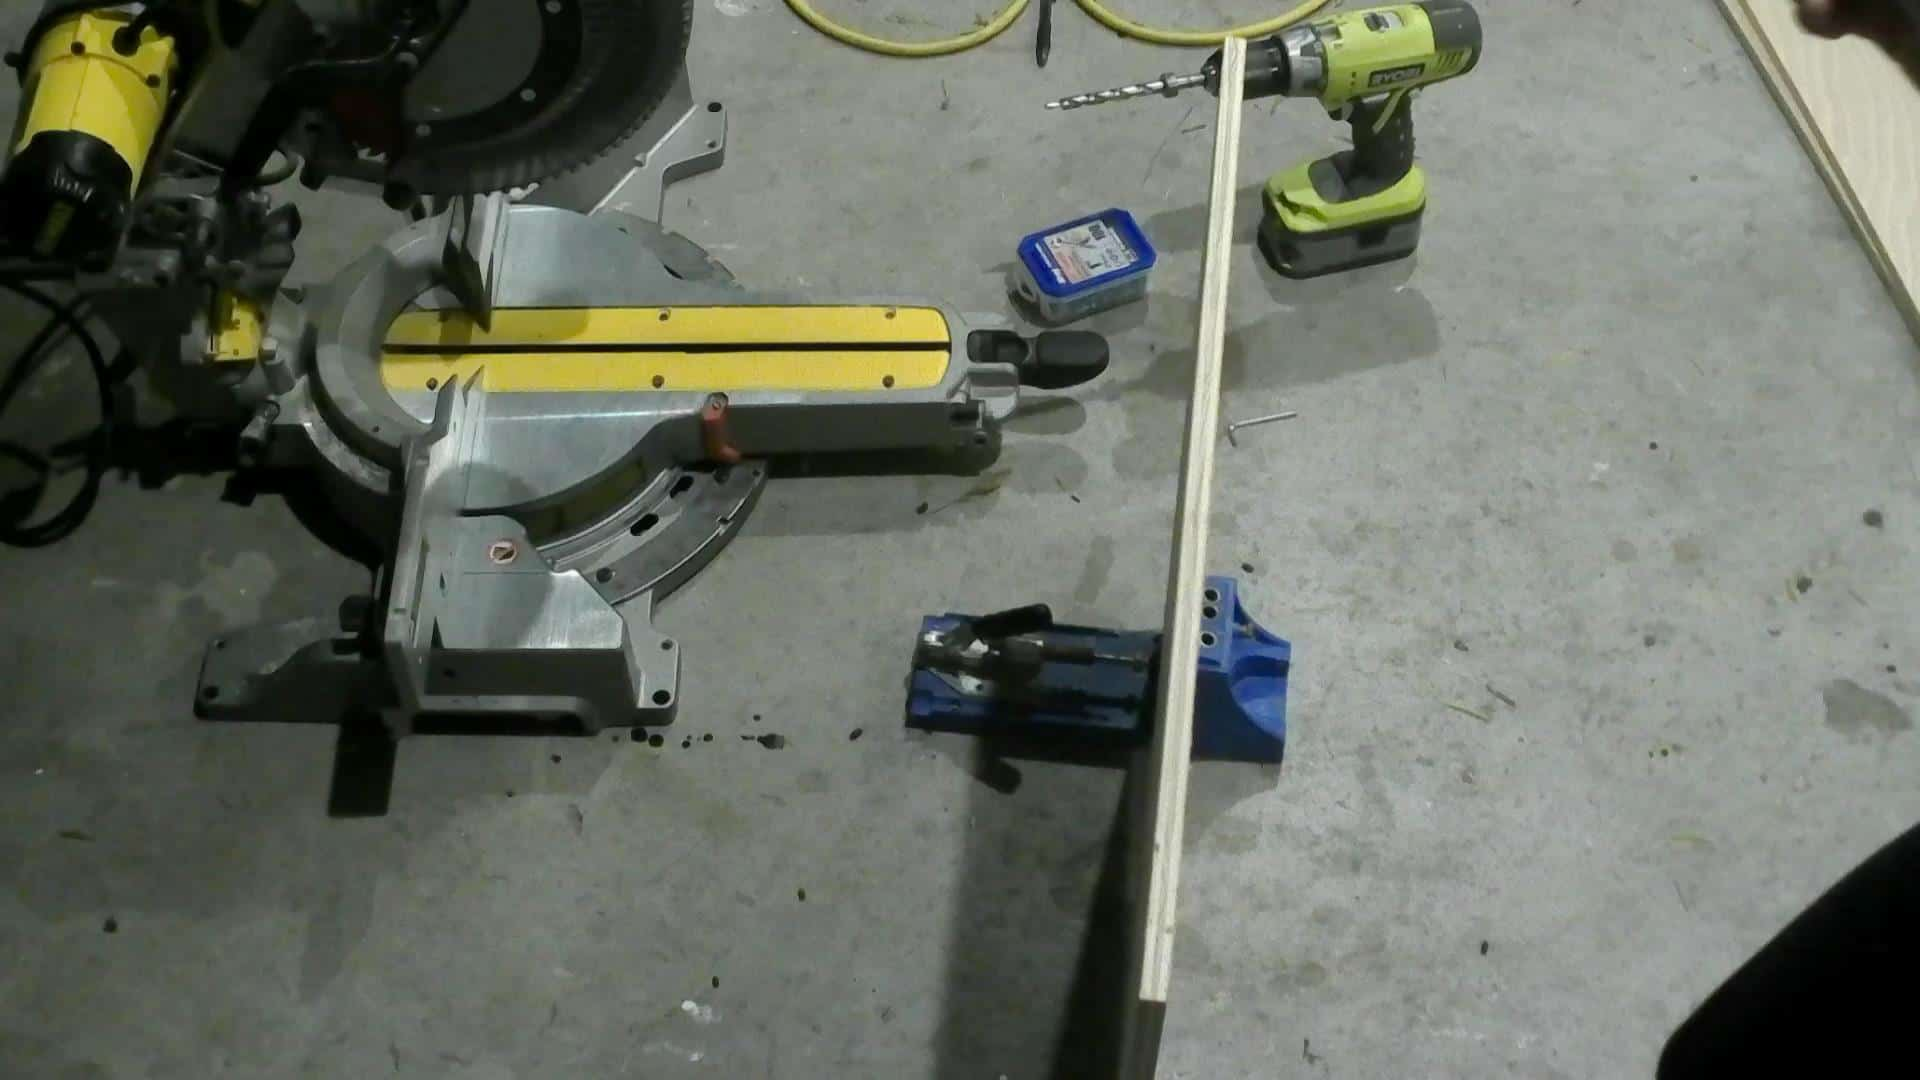 Drilling pocket holes with the Kreg Jig